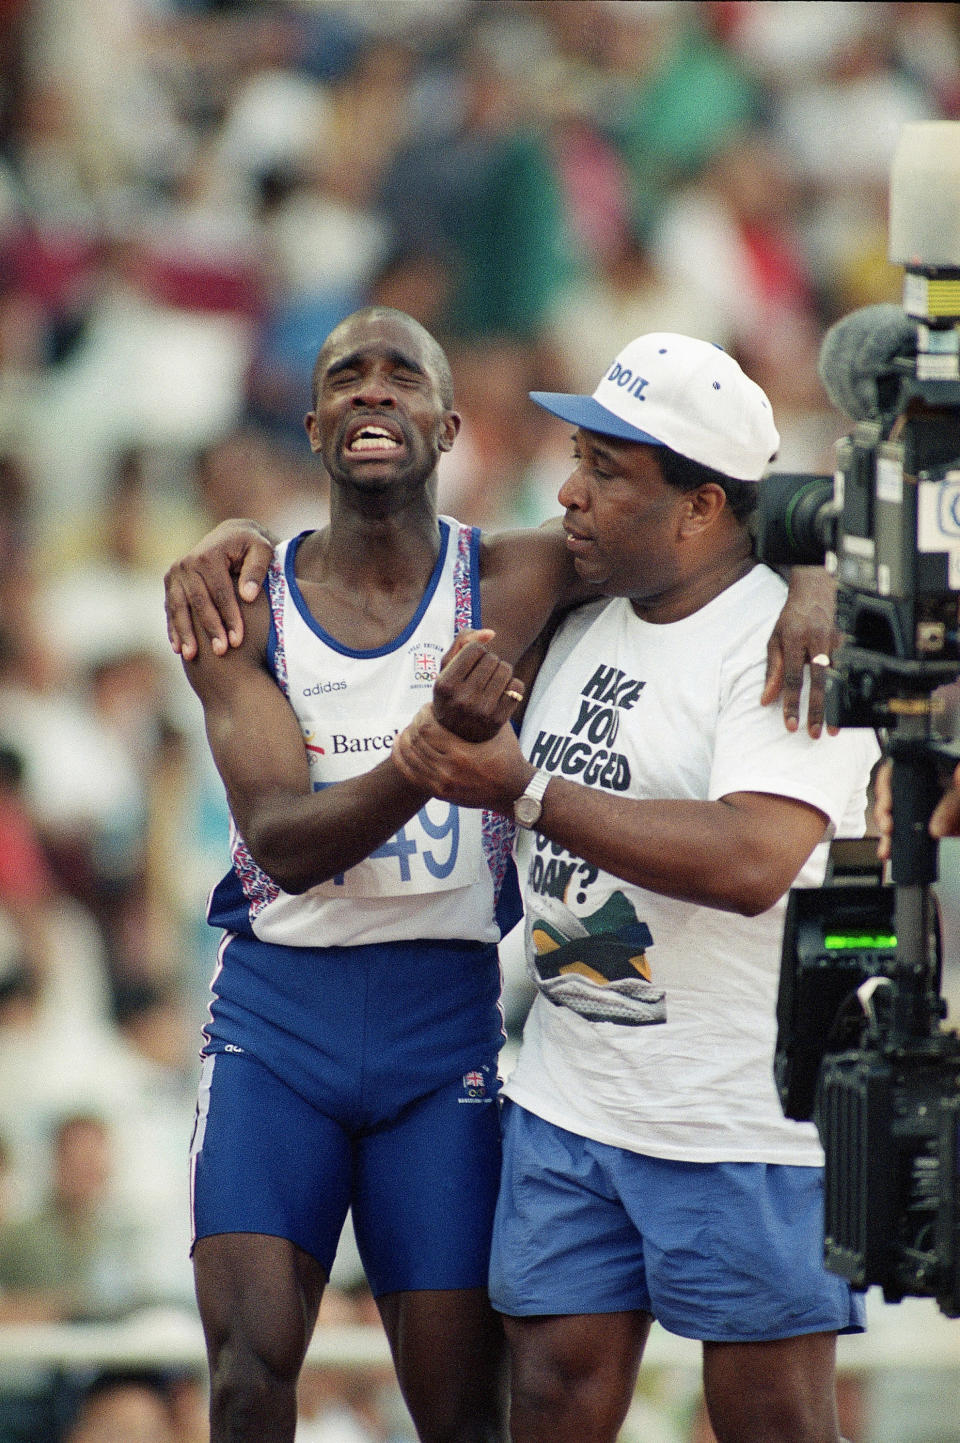 FILE - In this Monday, Aug. 3, 1992, file photo, Britain's Derek Redmond grimaces as he is helped from the track by his father, Jim Redmond, after an injury during the semifinals of the Men's 400-meter race at the Summer Olympics Games in Barcelona (AP Photo/Denis Paquin, File)